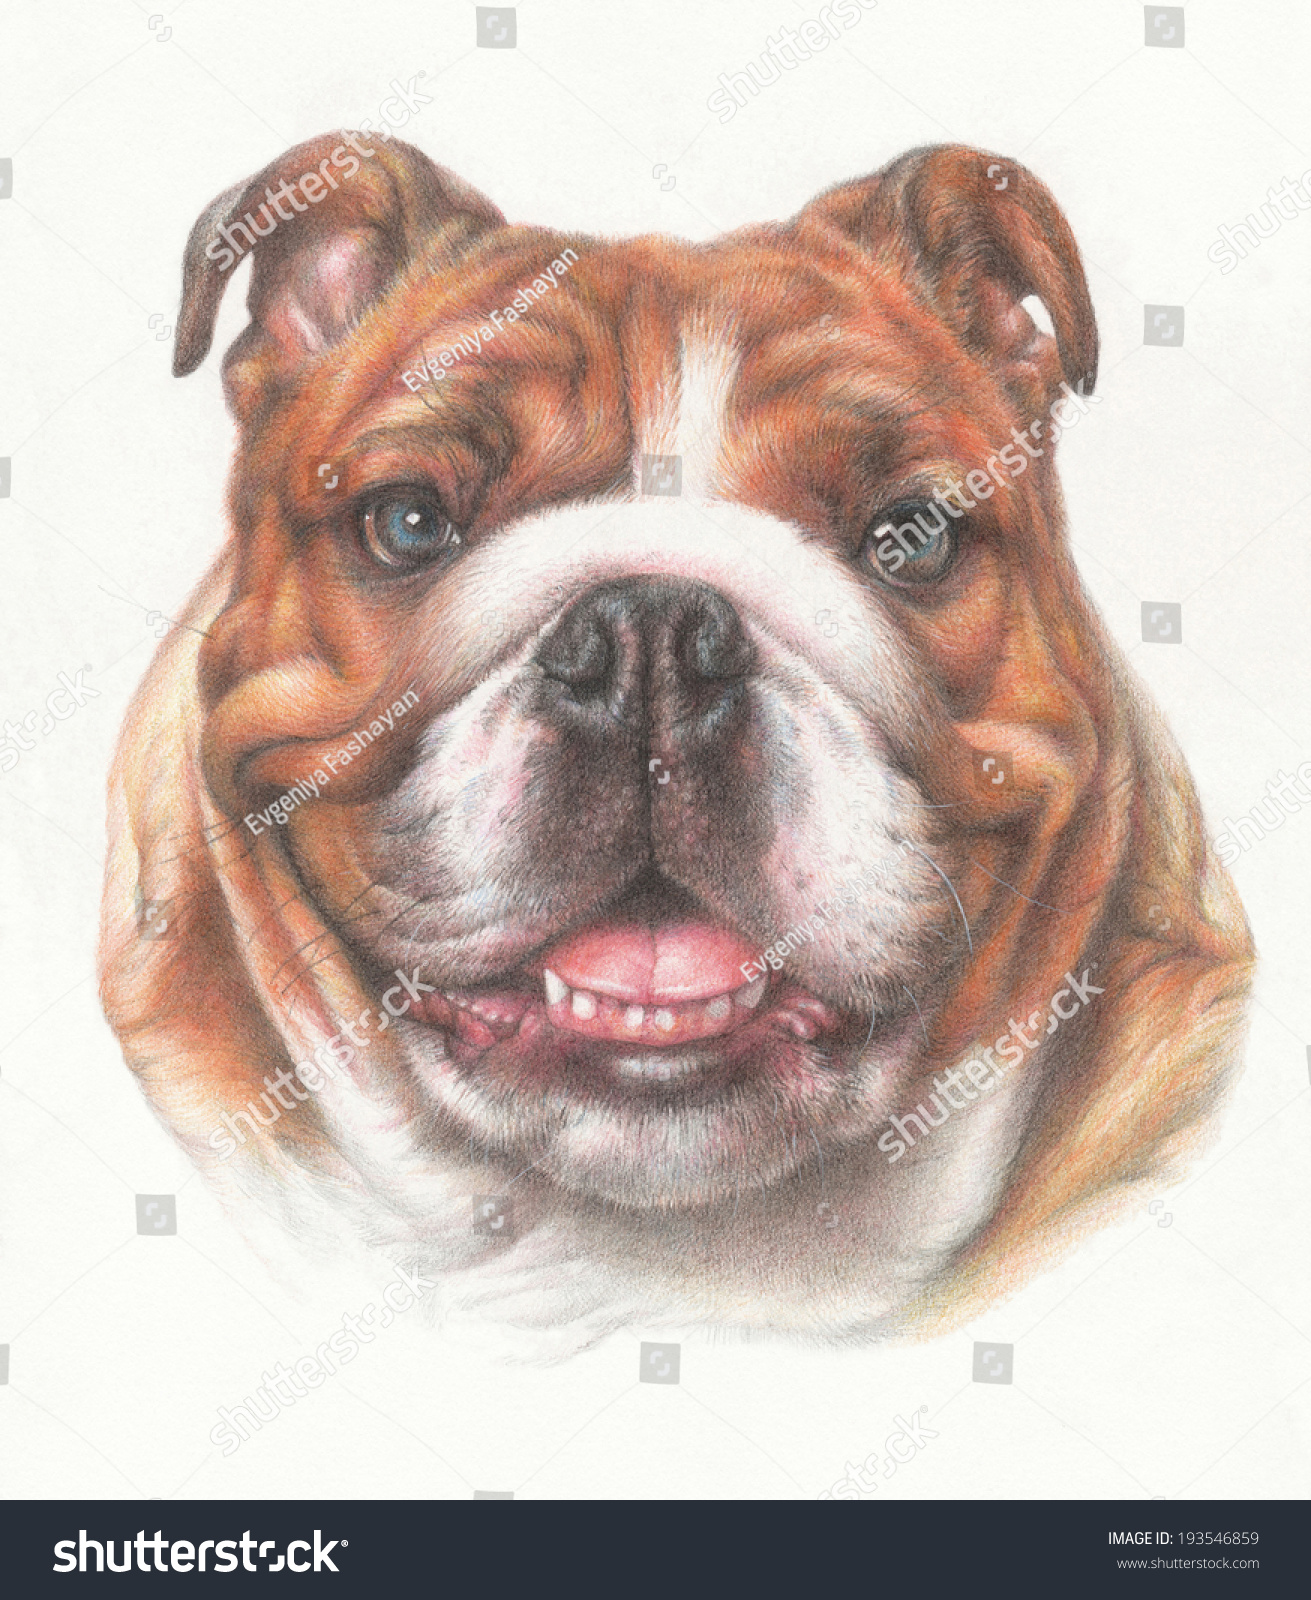 head of english bulldog drawing with colored pencils